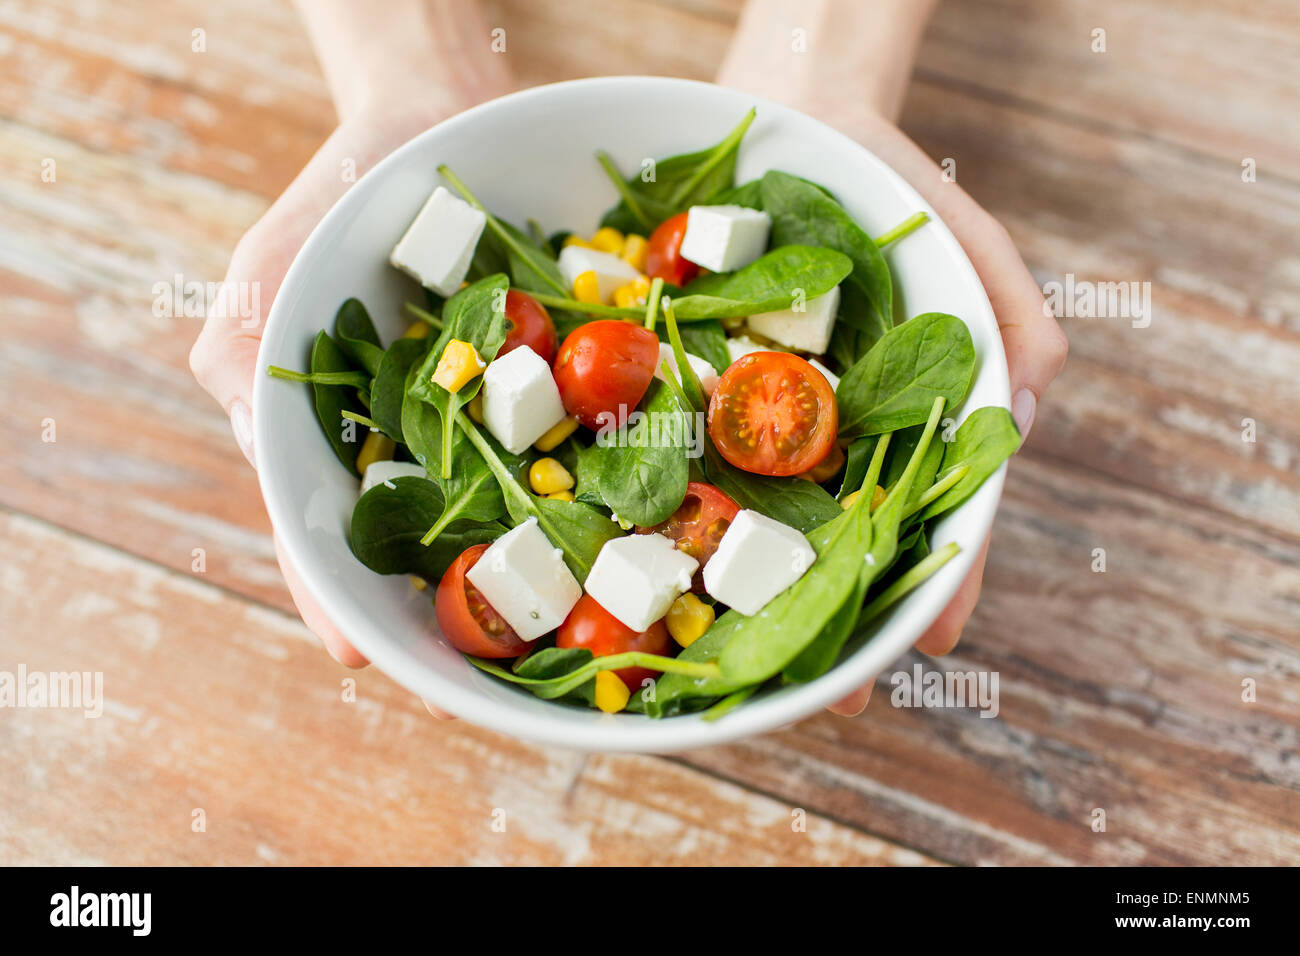 close up of young woman hands showing salad bowl - Stock Image